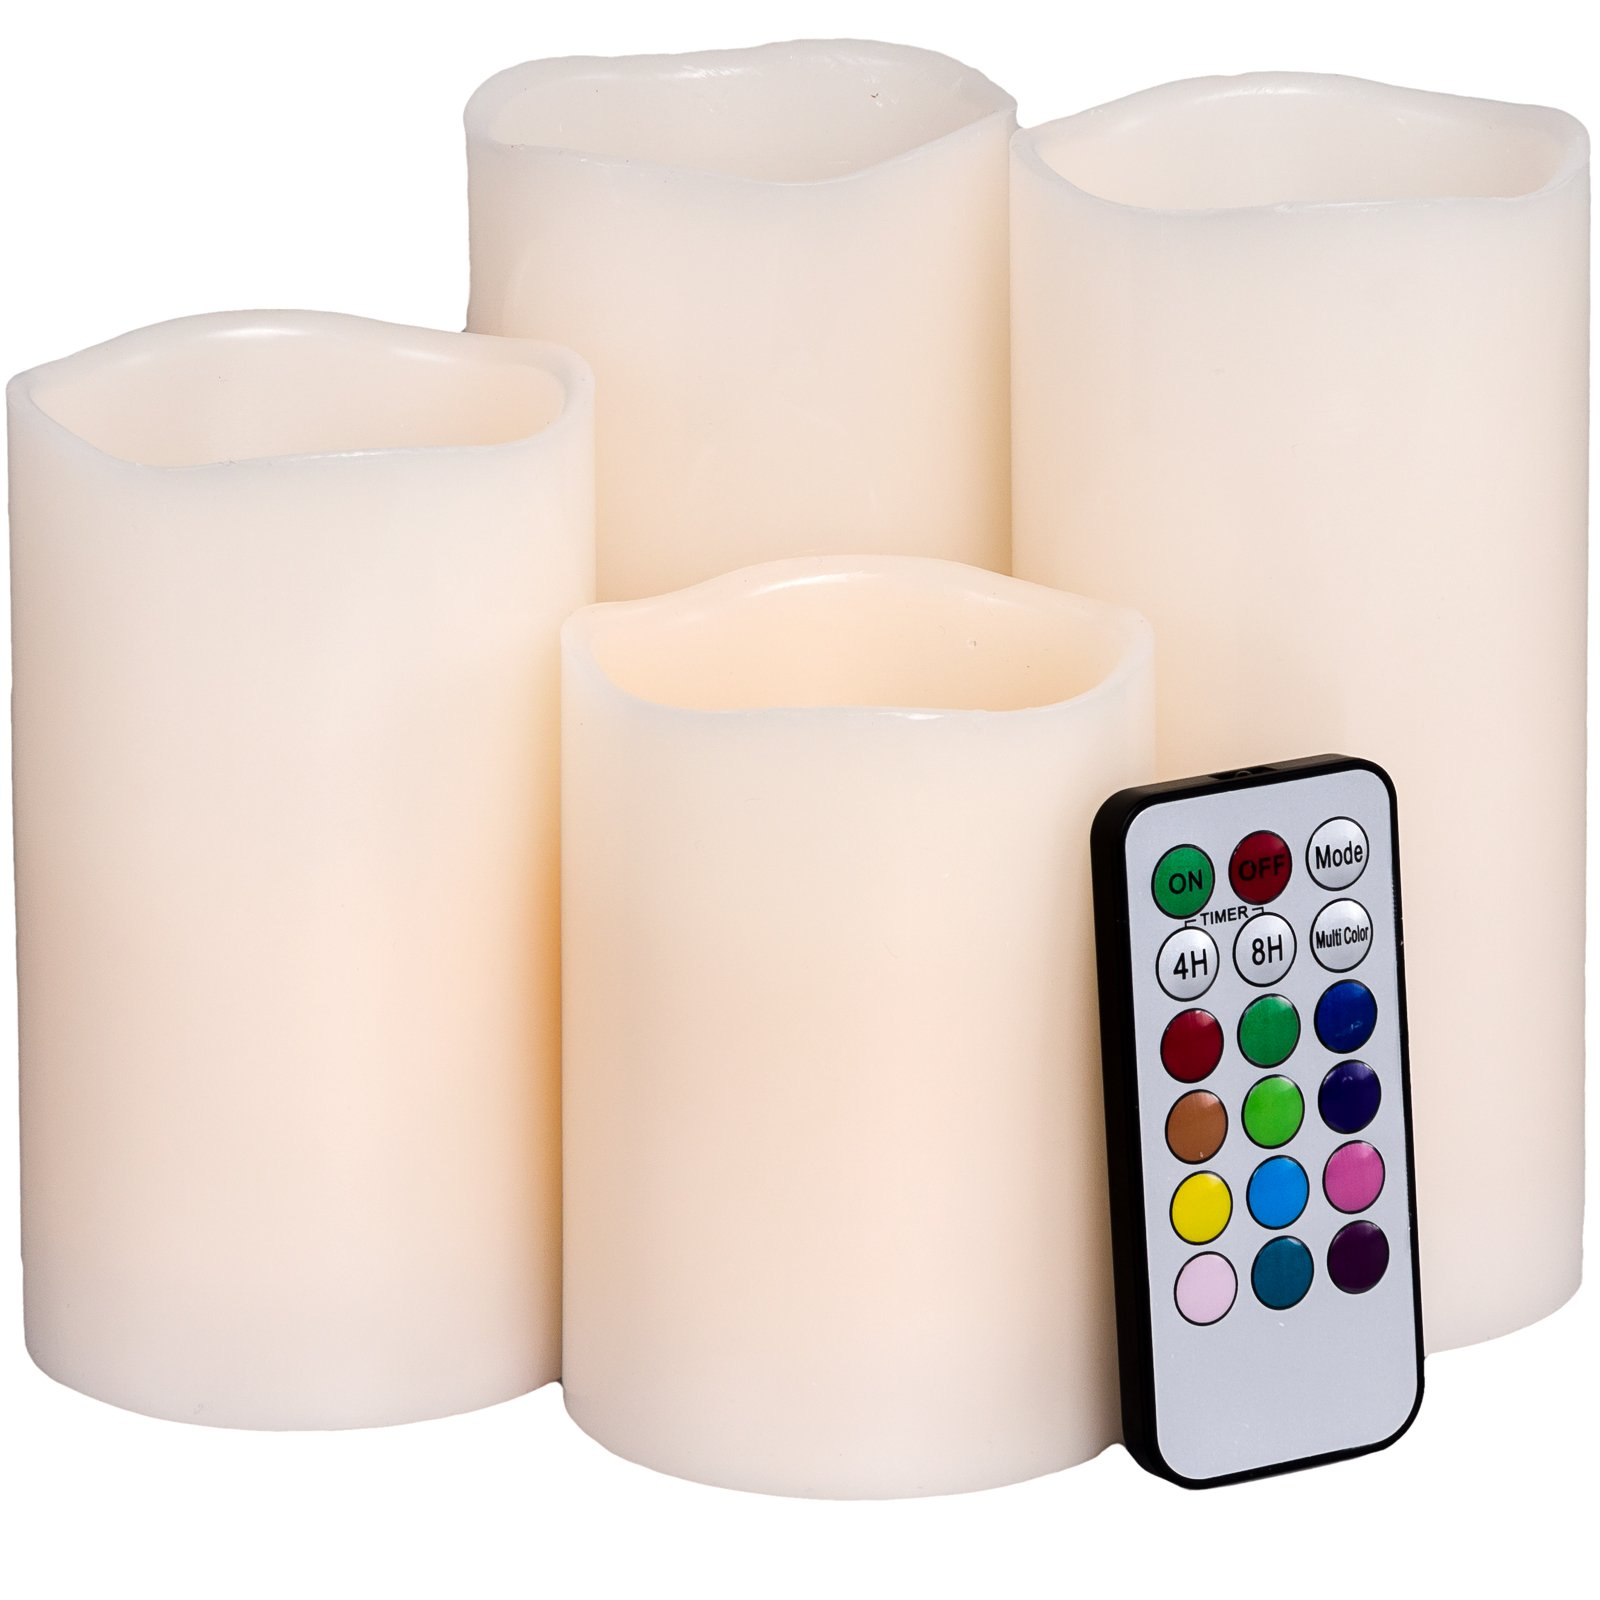 GreenLighting Flameless Candle Set - Color Changing LED Wax Candles w/ Remote